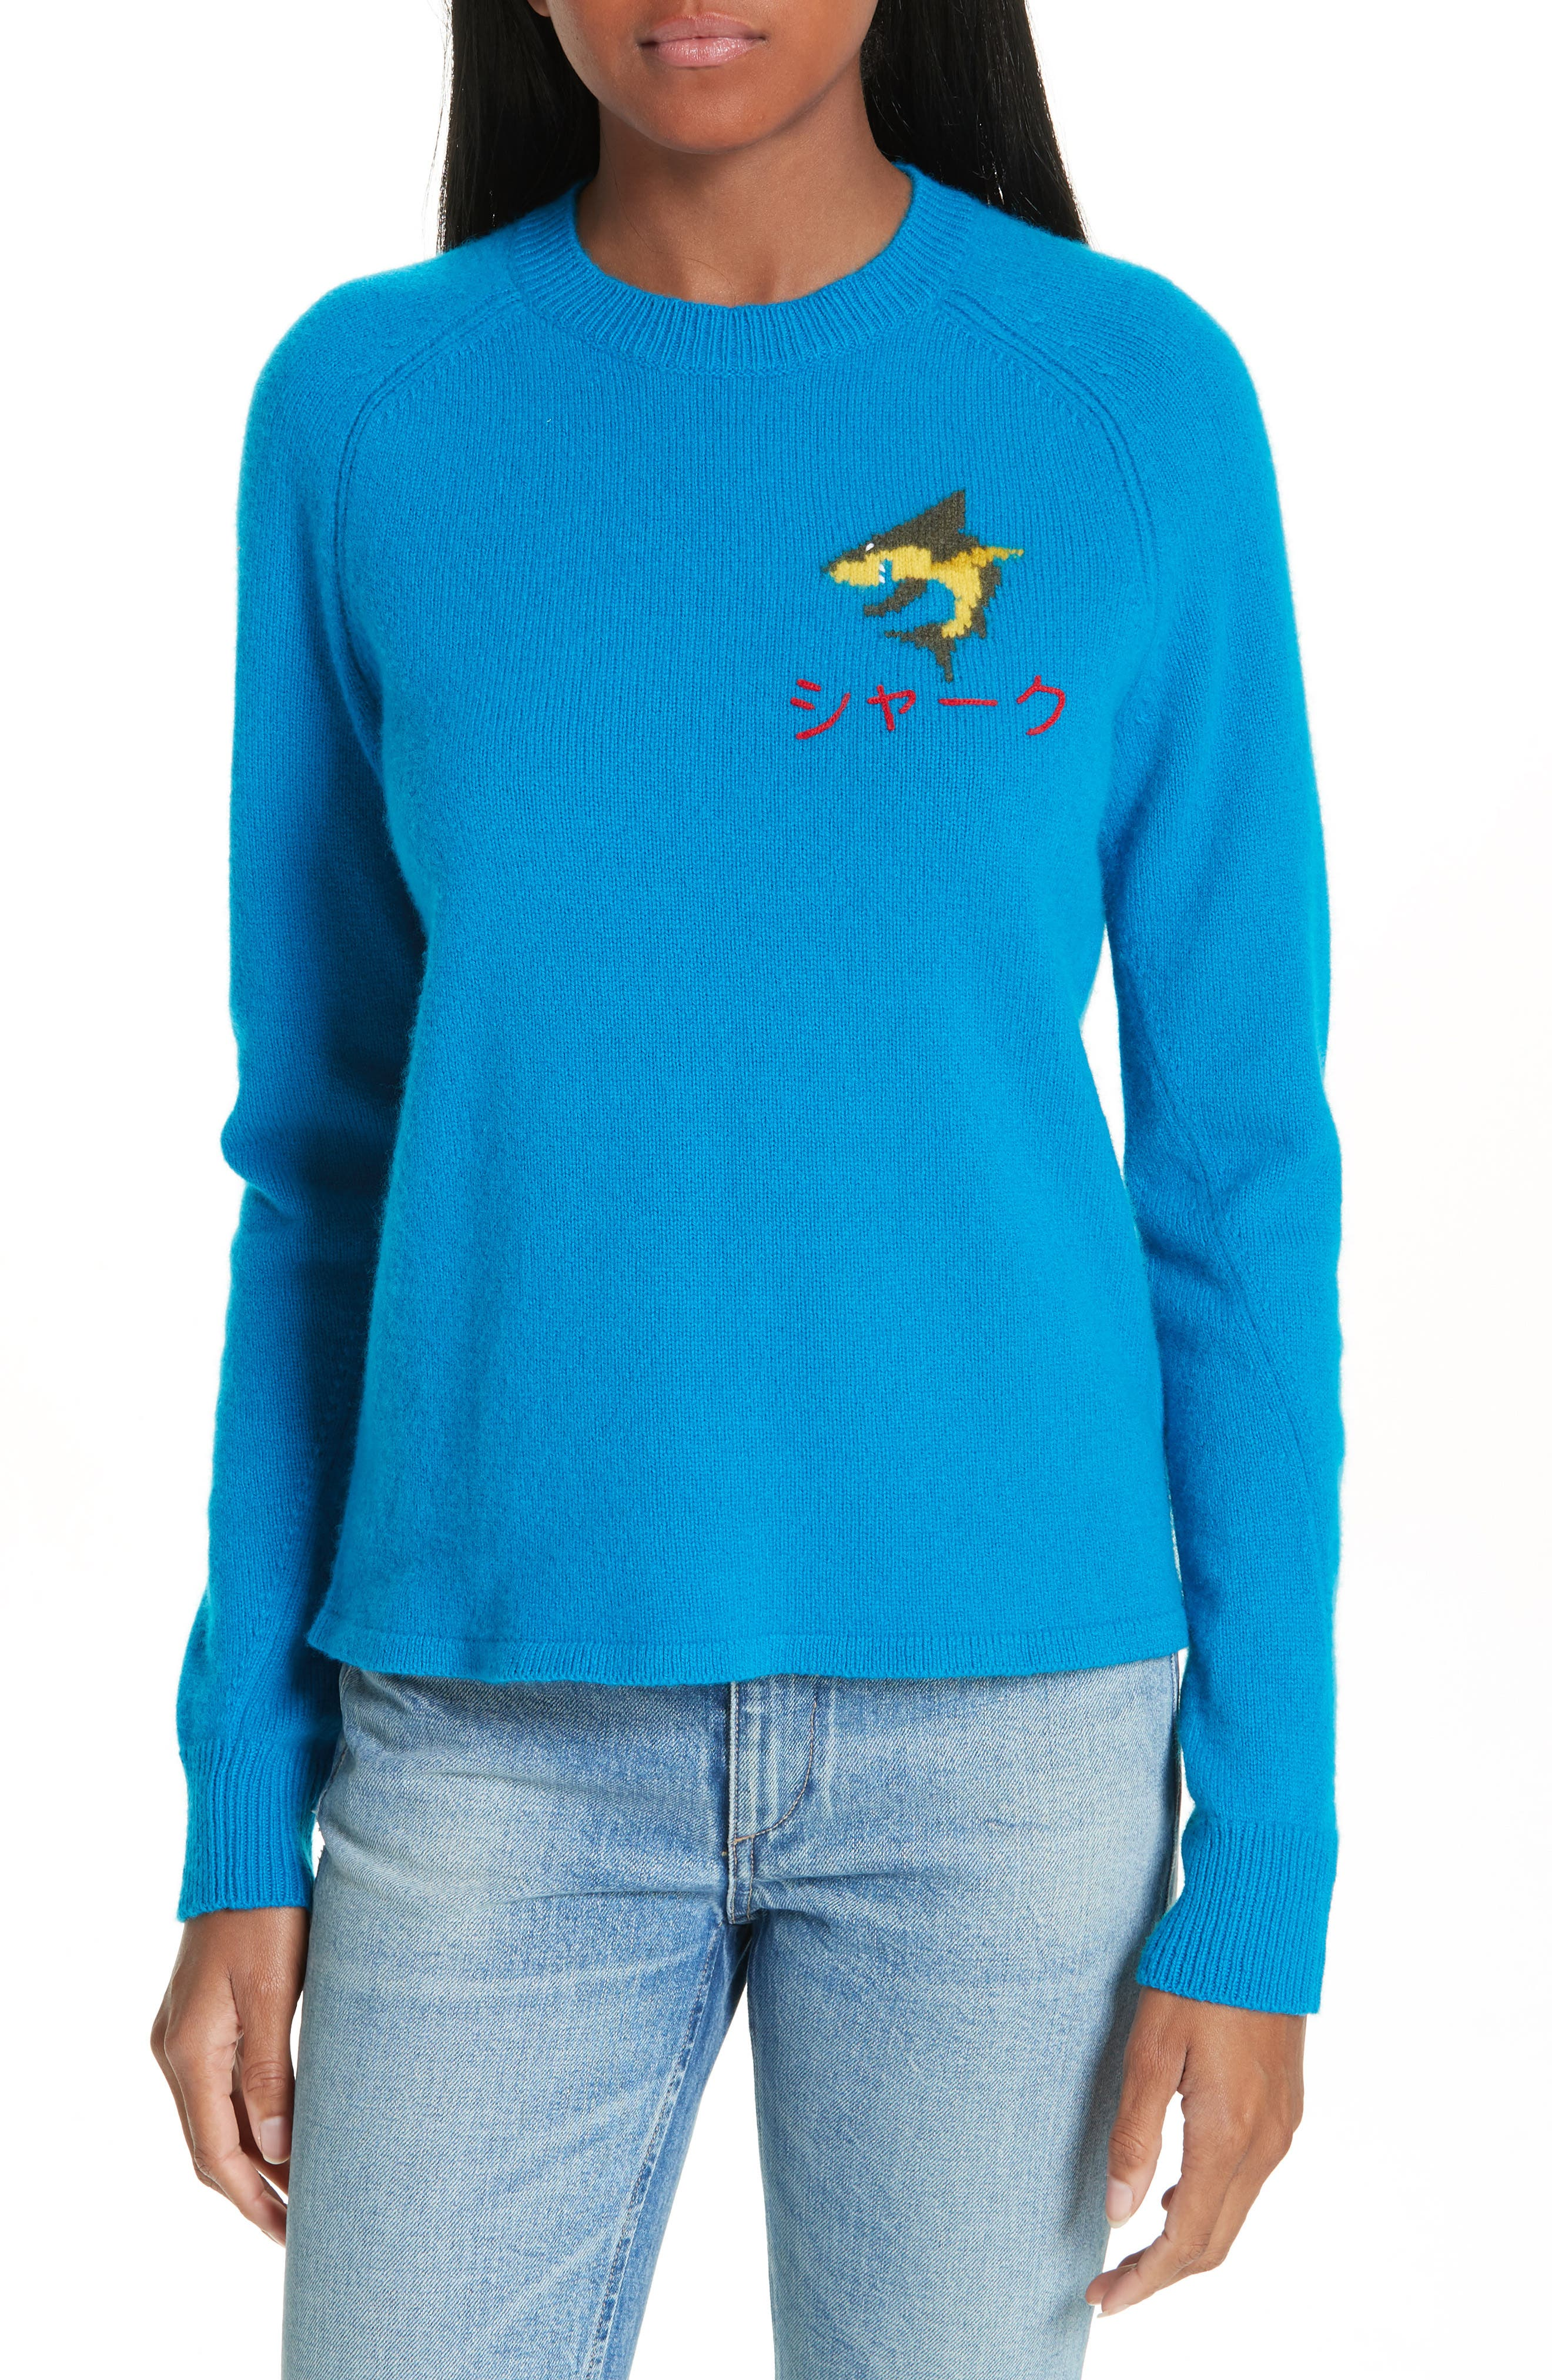 Storm Wool Intarsia Pullover Sweater in Blue